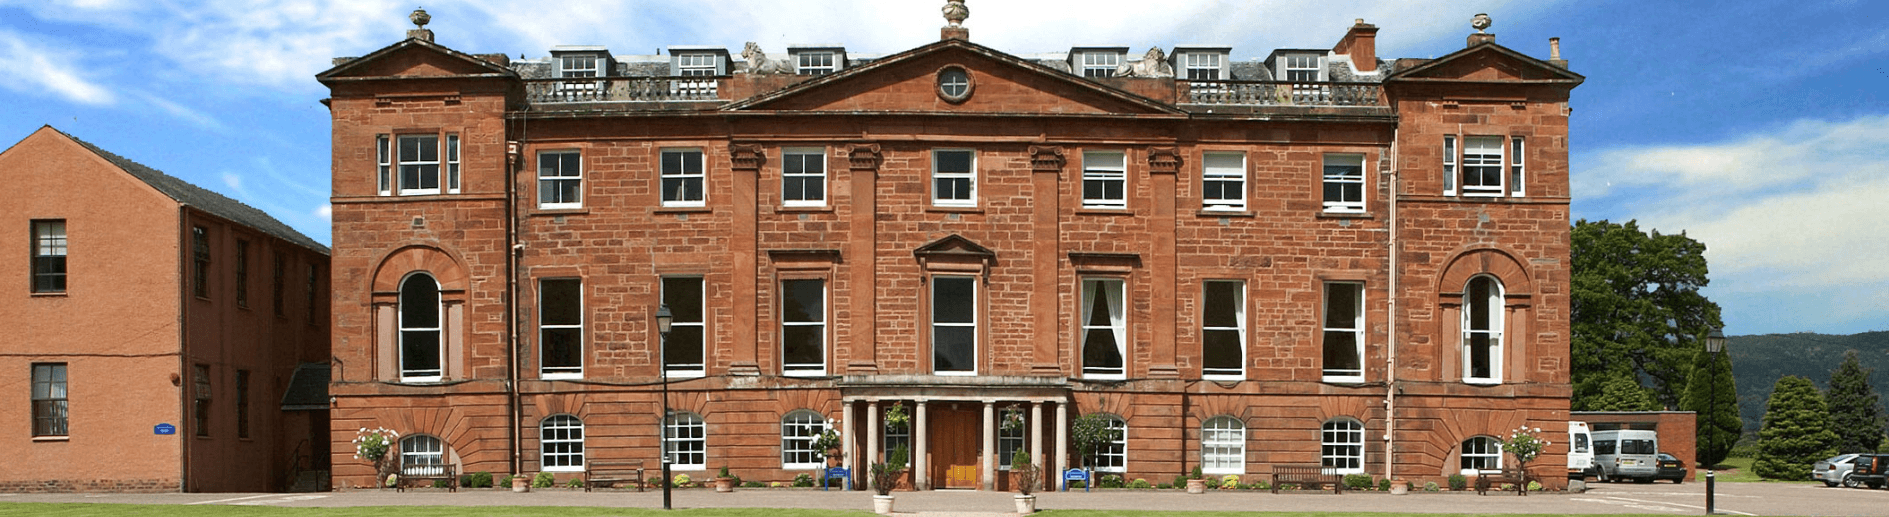 Boarding School for Girls - Kilgraston School